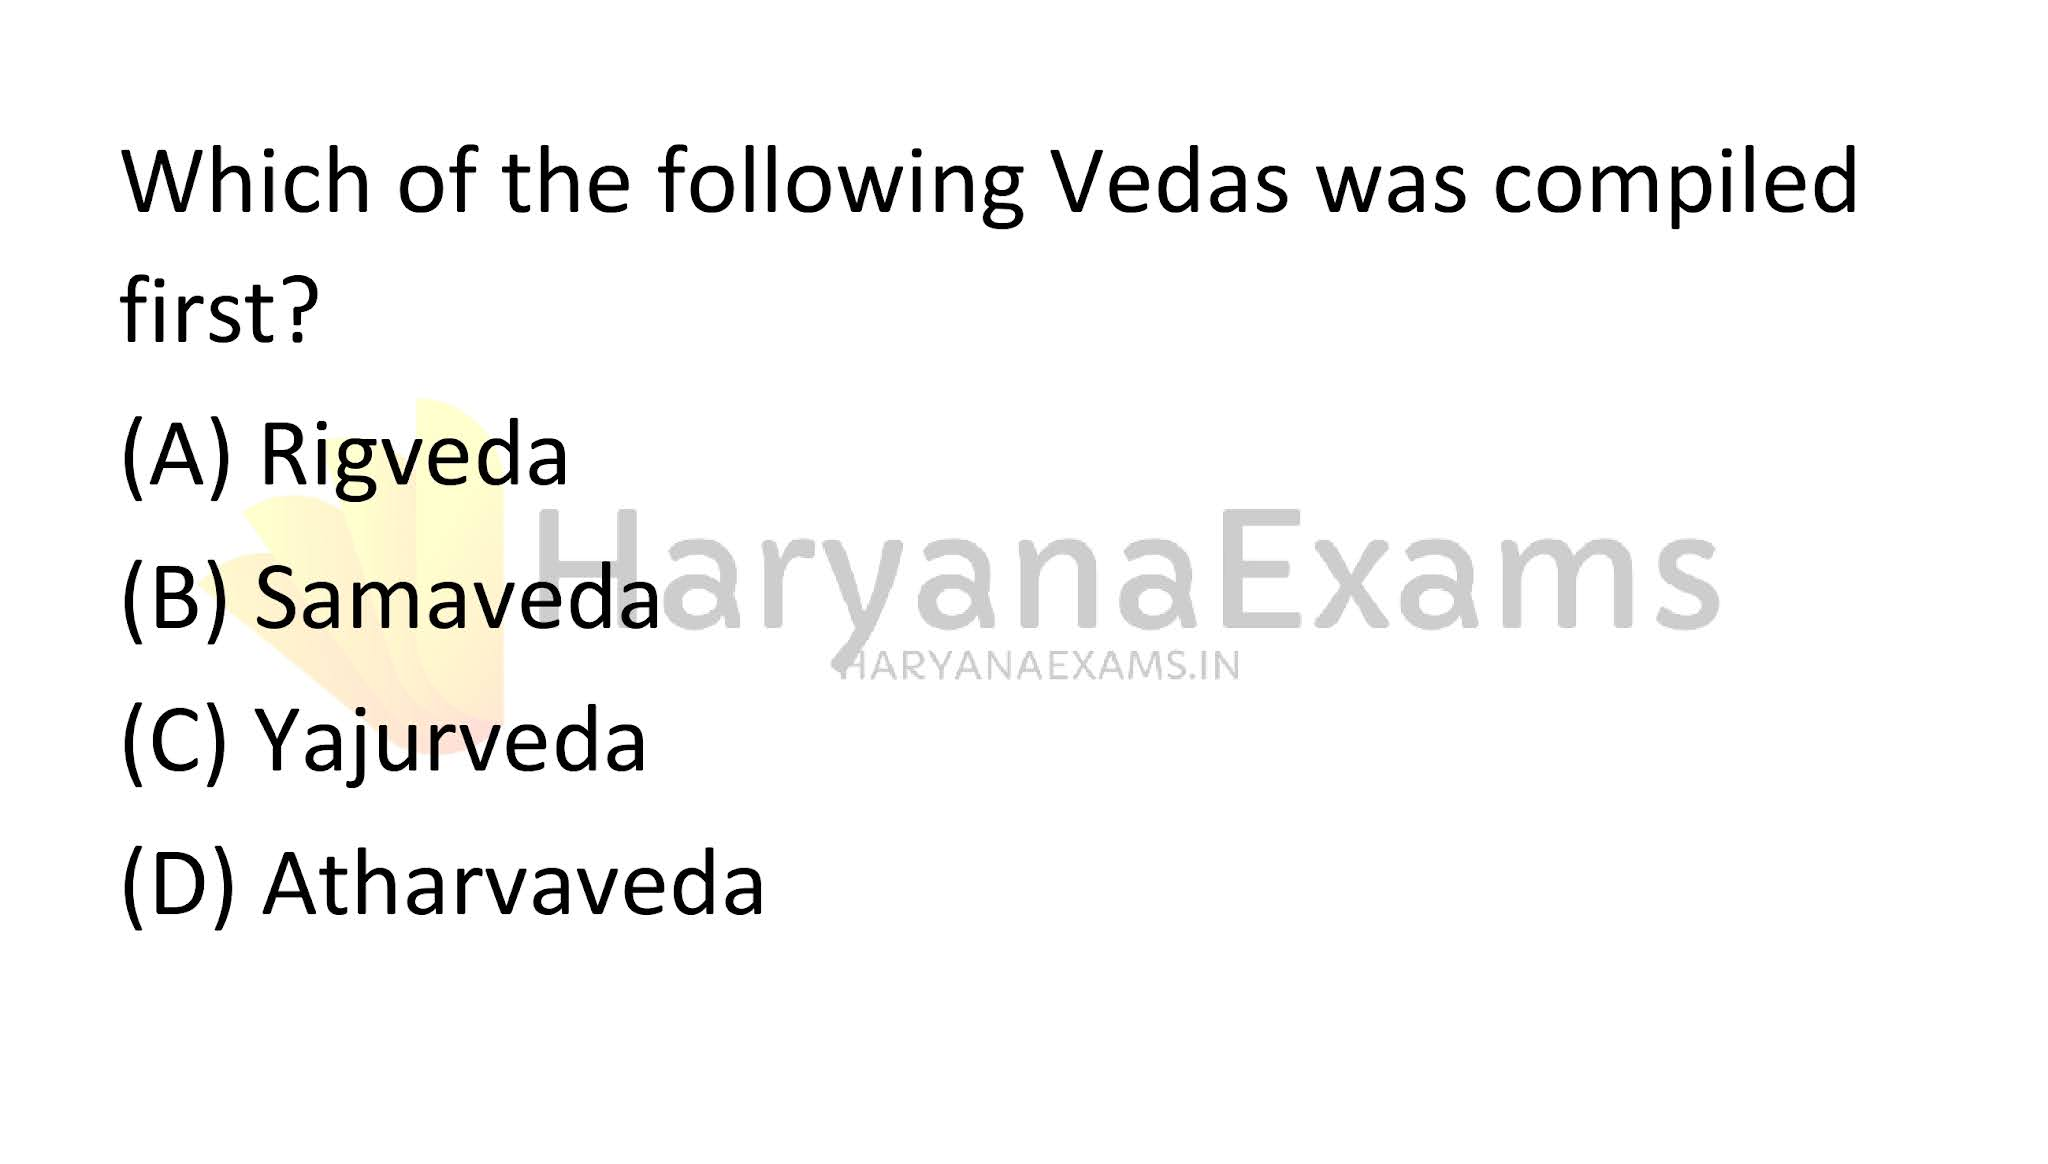 Which of the following Vedas was compiled first?